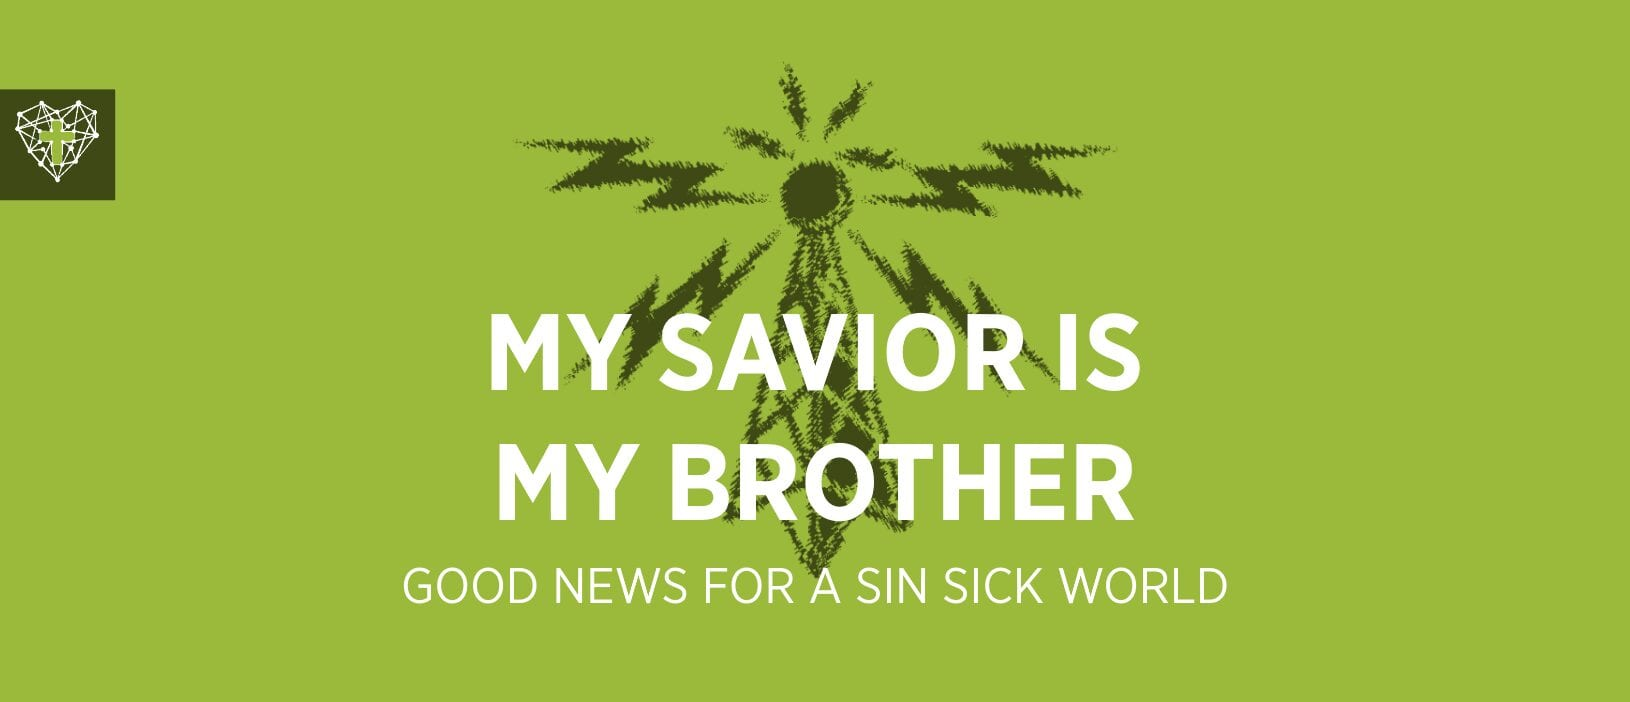 Good News Week 5 : My Savior Is My Brother